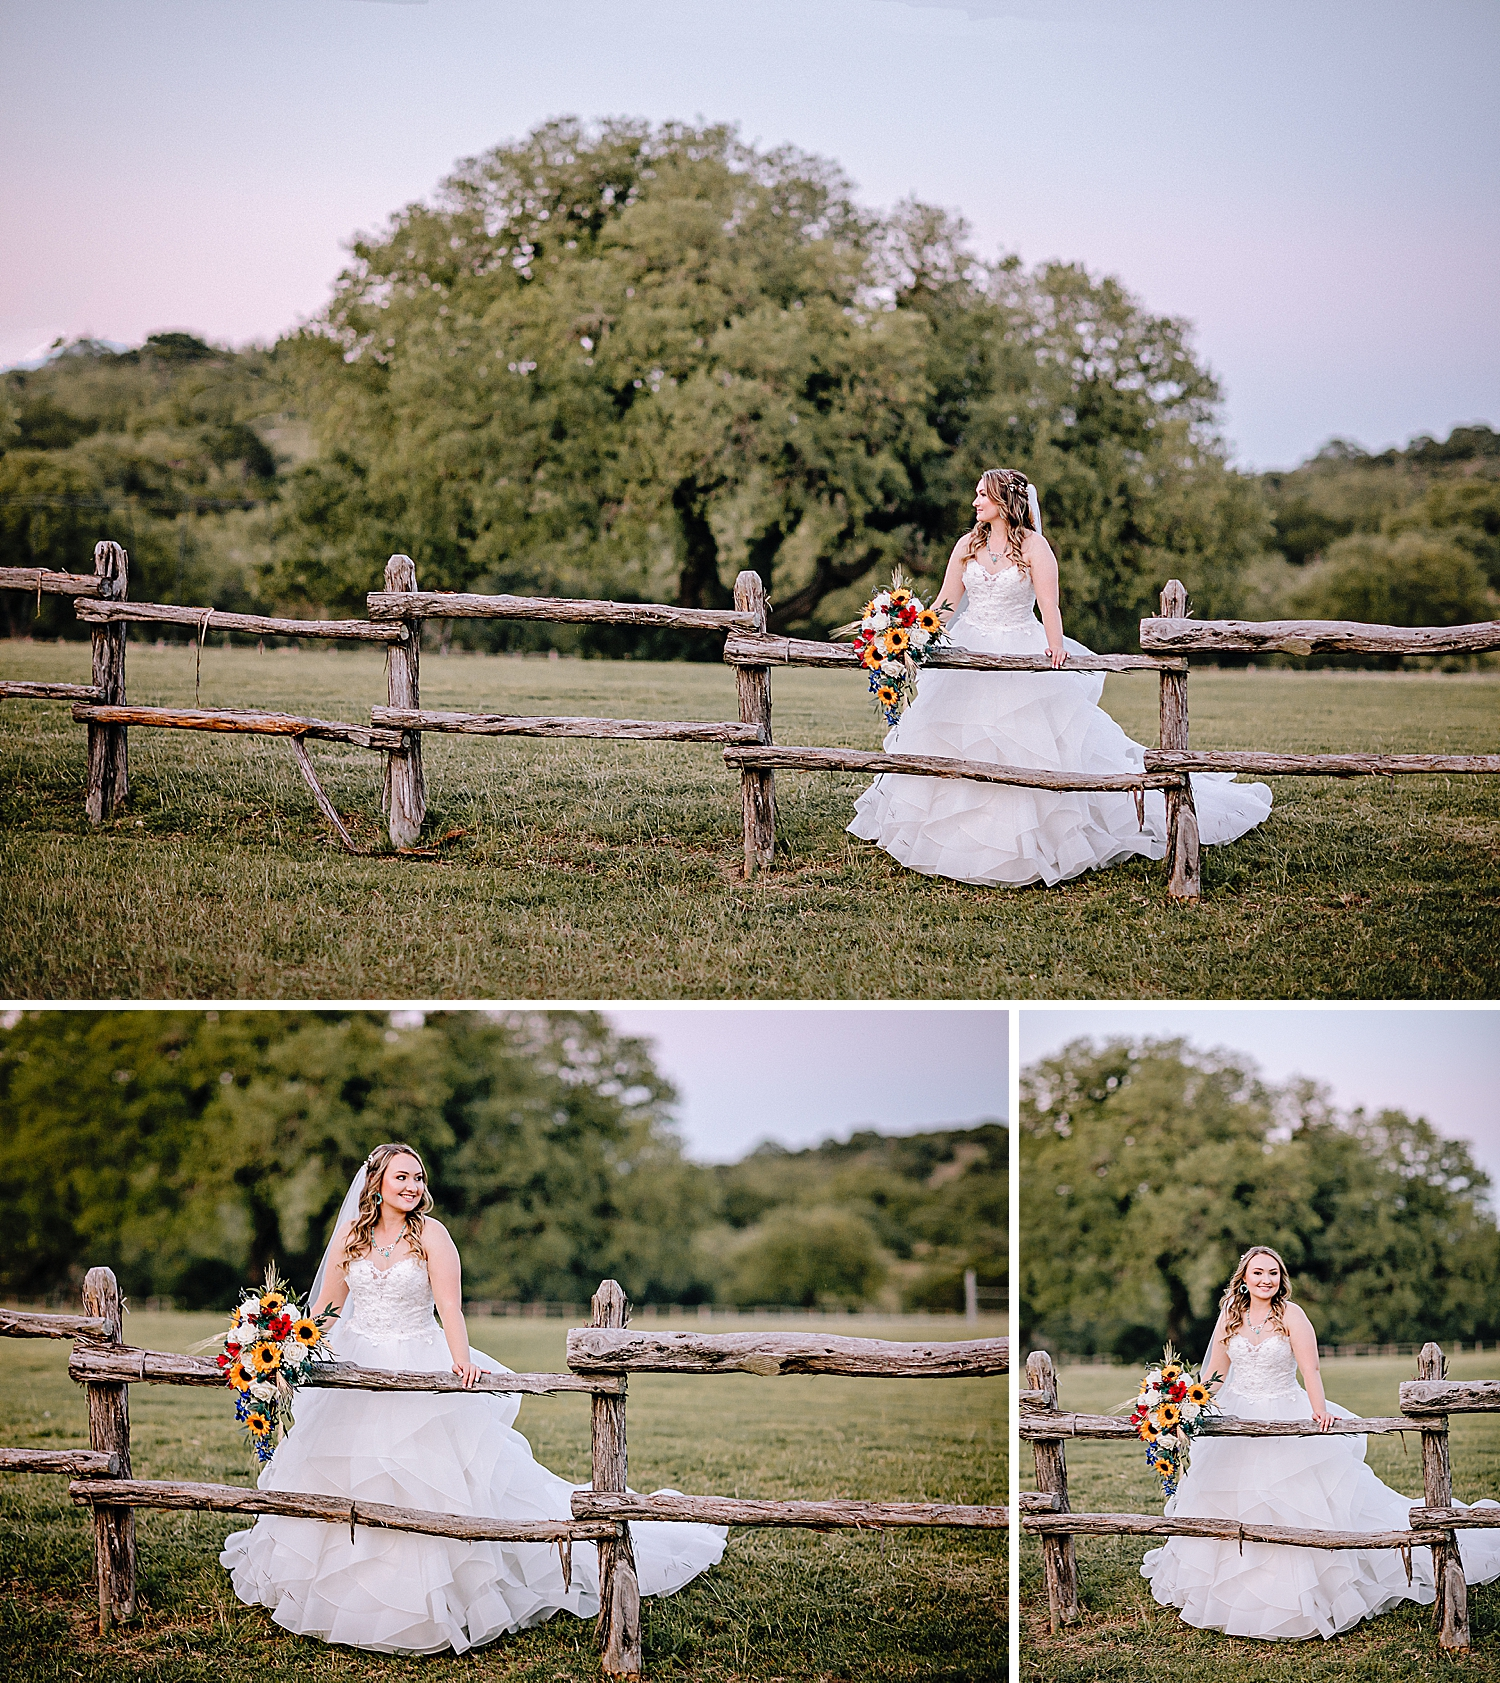 Carly-Barton-Photography-Texas-Bridals-Boerne-Rustic-Wedding-Photos_0011.jpg